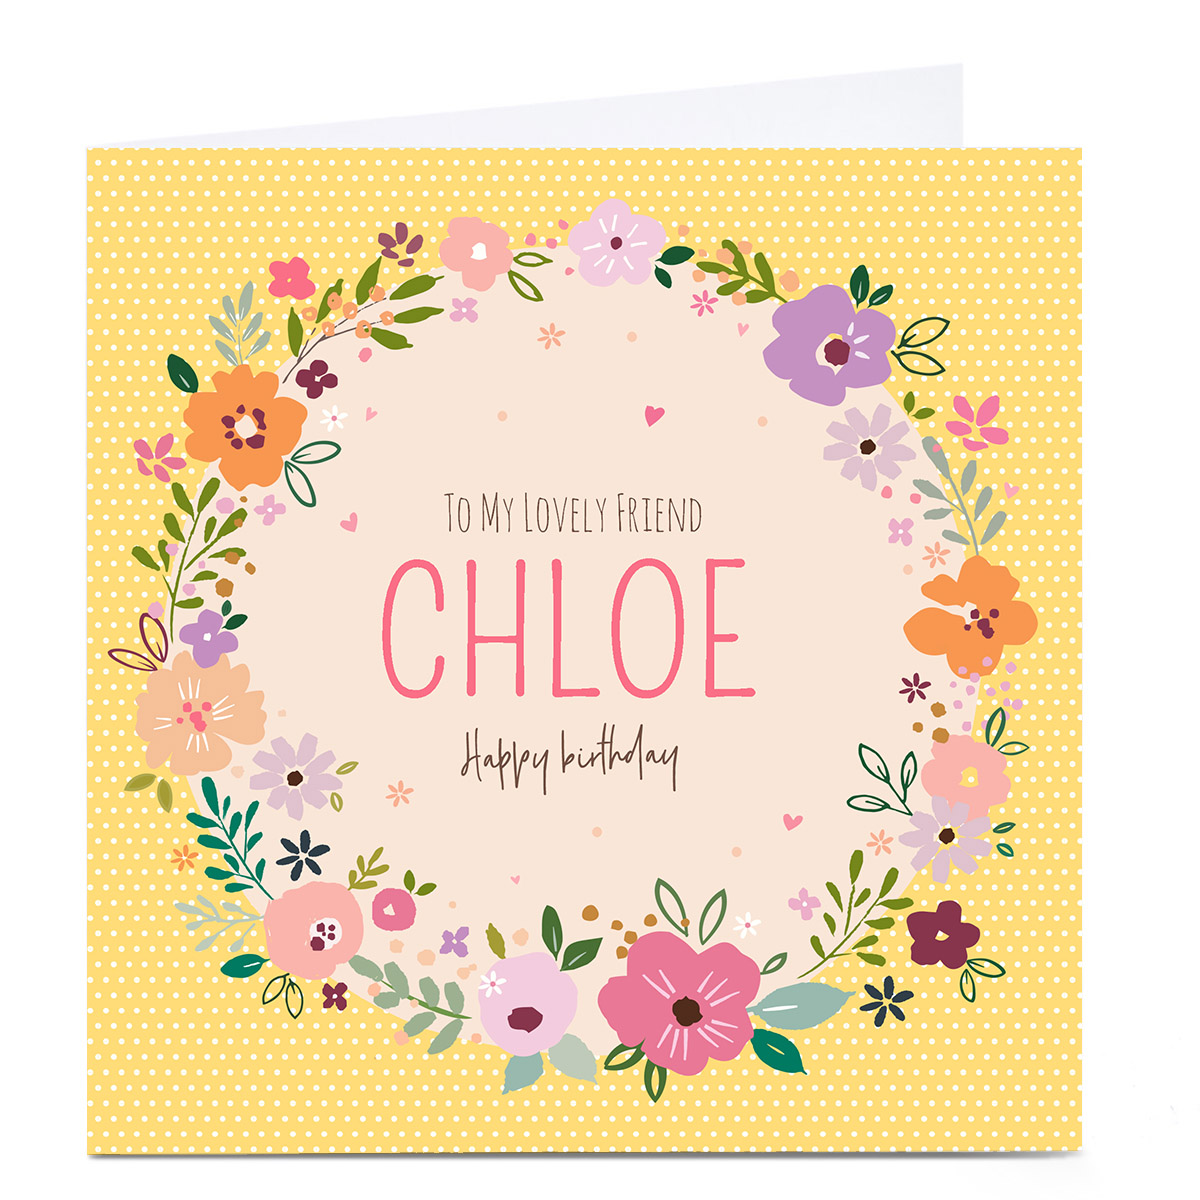 Personalised Nikki Upsher Birthday Card - Yellow Floral Wreath